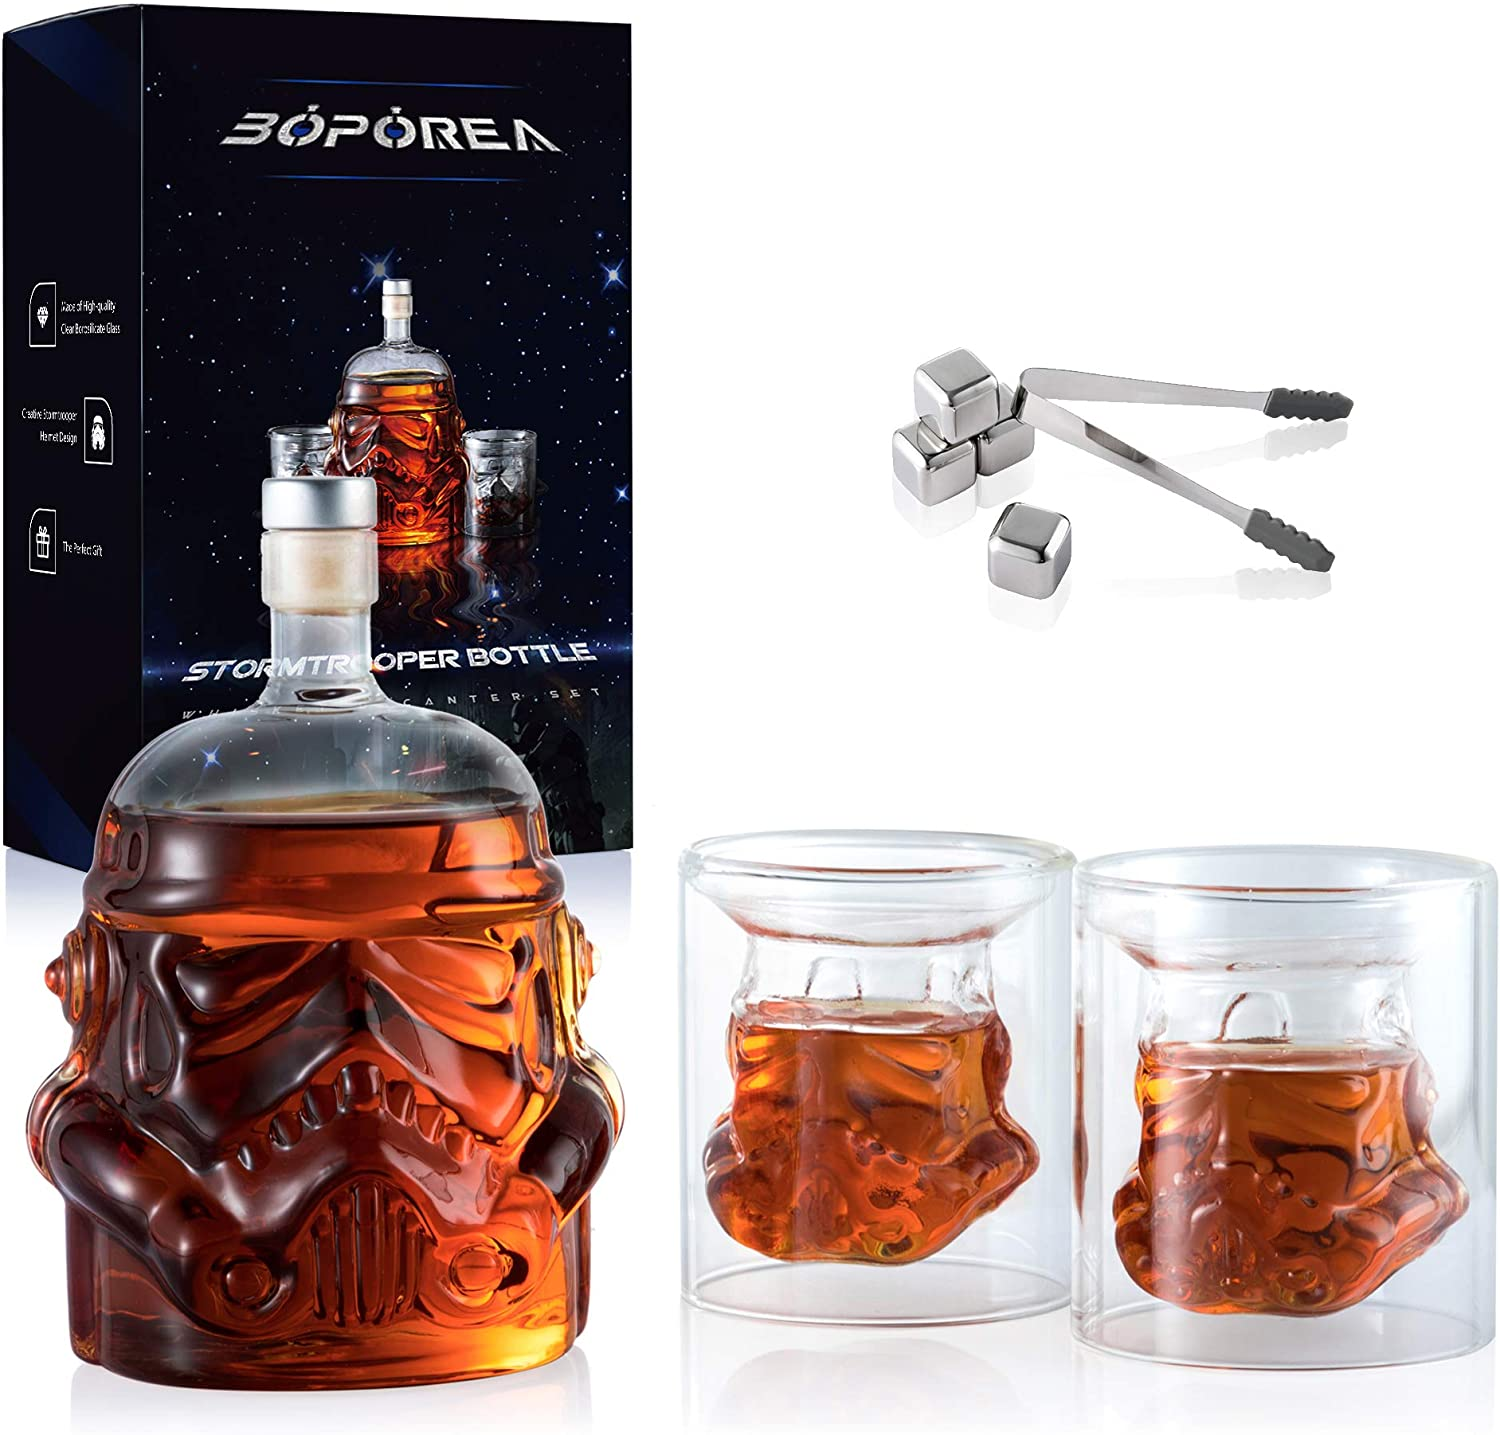 Transparent Creative Whiskey Decanter Set with 2 Glasses, 4 Stainless Steel Ice Cubes and Ice Tong,Flask Carafe,Whiskey Carafe for Wine,Scotch,Bourbon,Vodka,Liquor - 750ML(New Packaging)